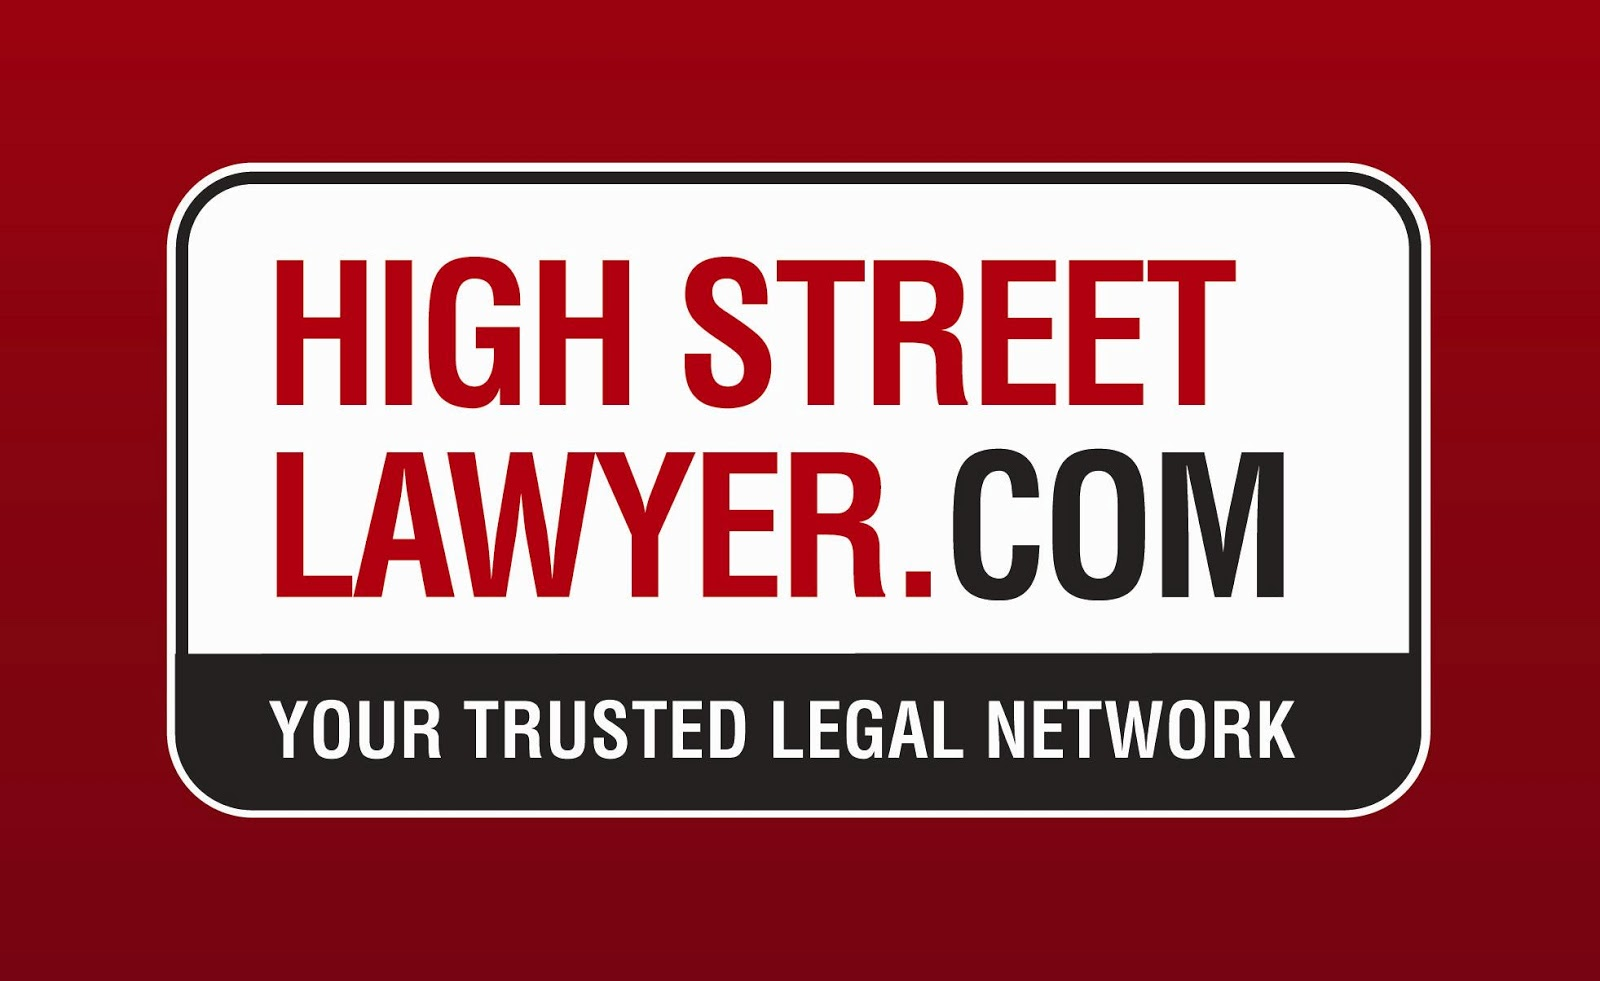 HighStreetLawyer.com Has Selected Workshare to Build Collaborative Community